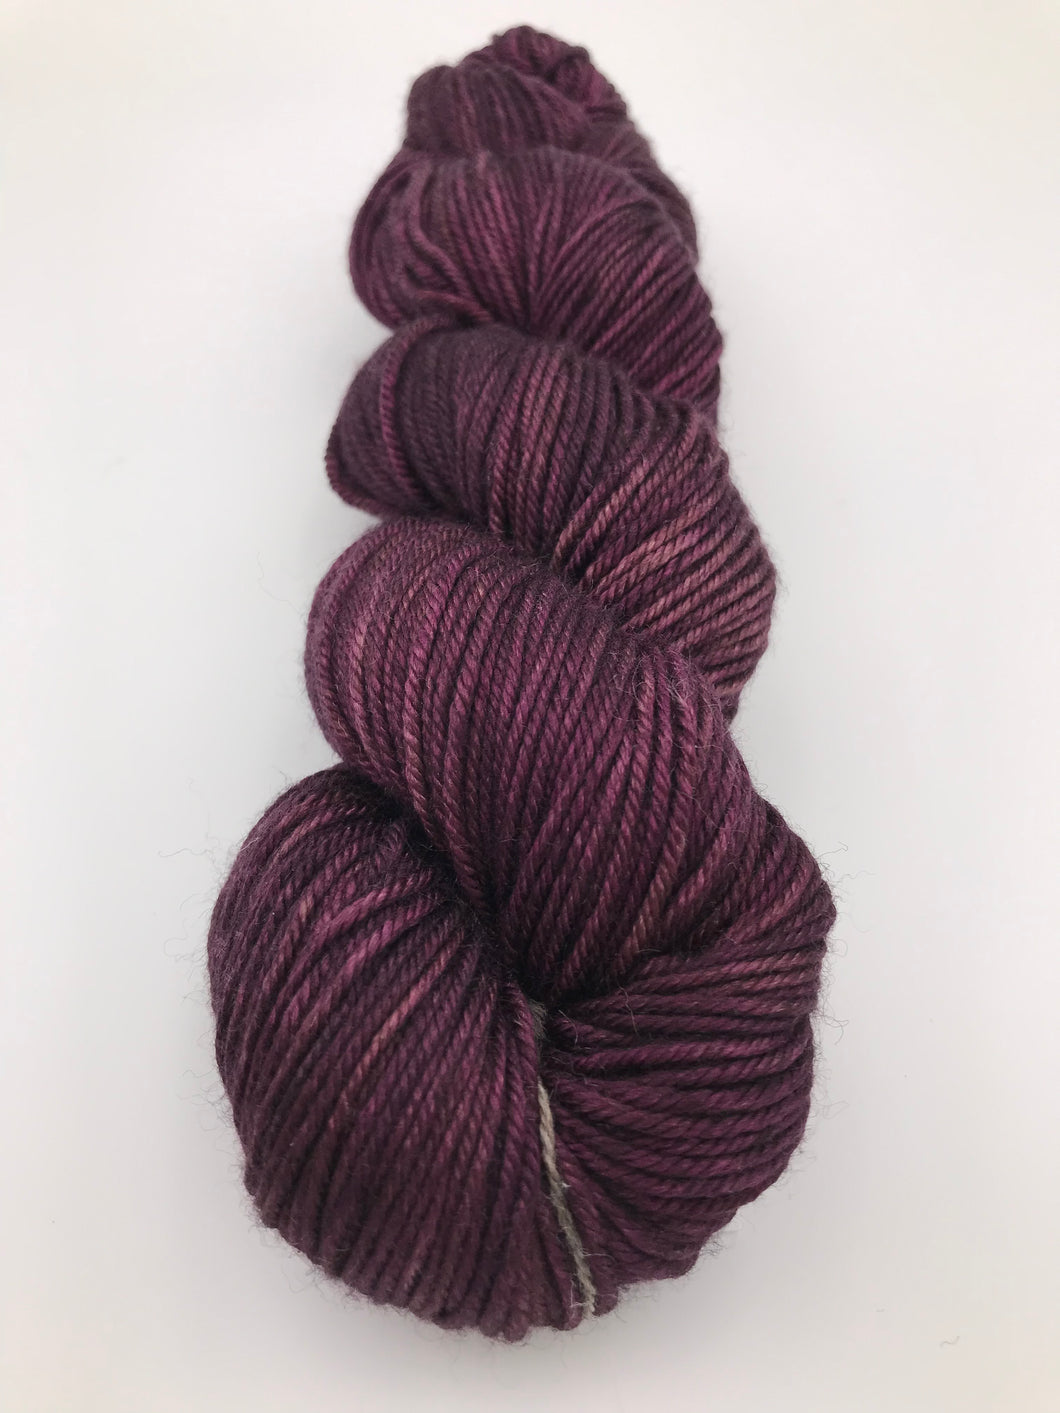 8ply Silk/Merino 'Two of Cups'